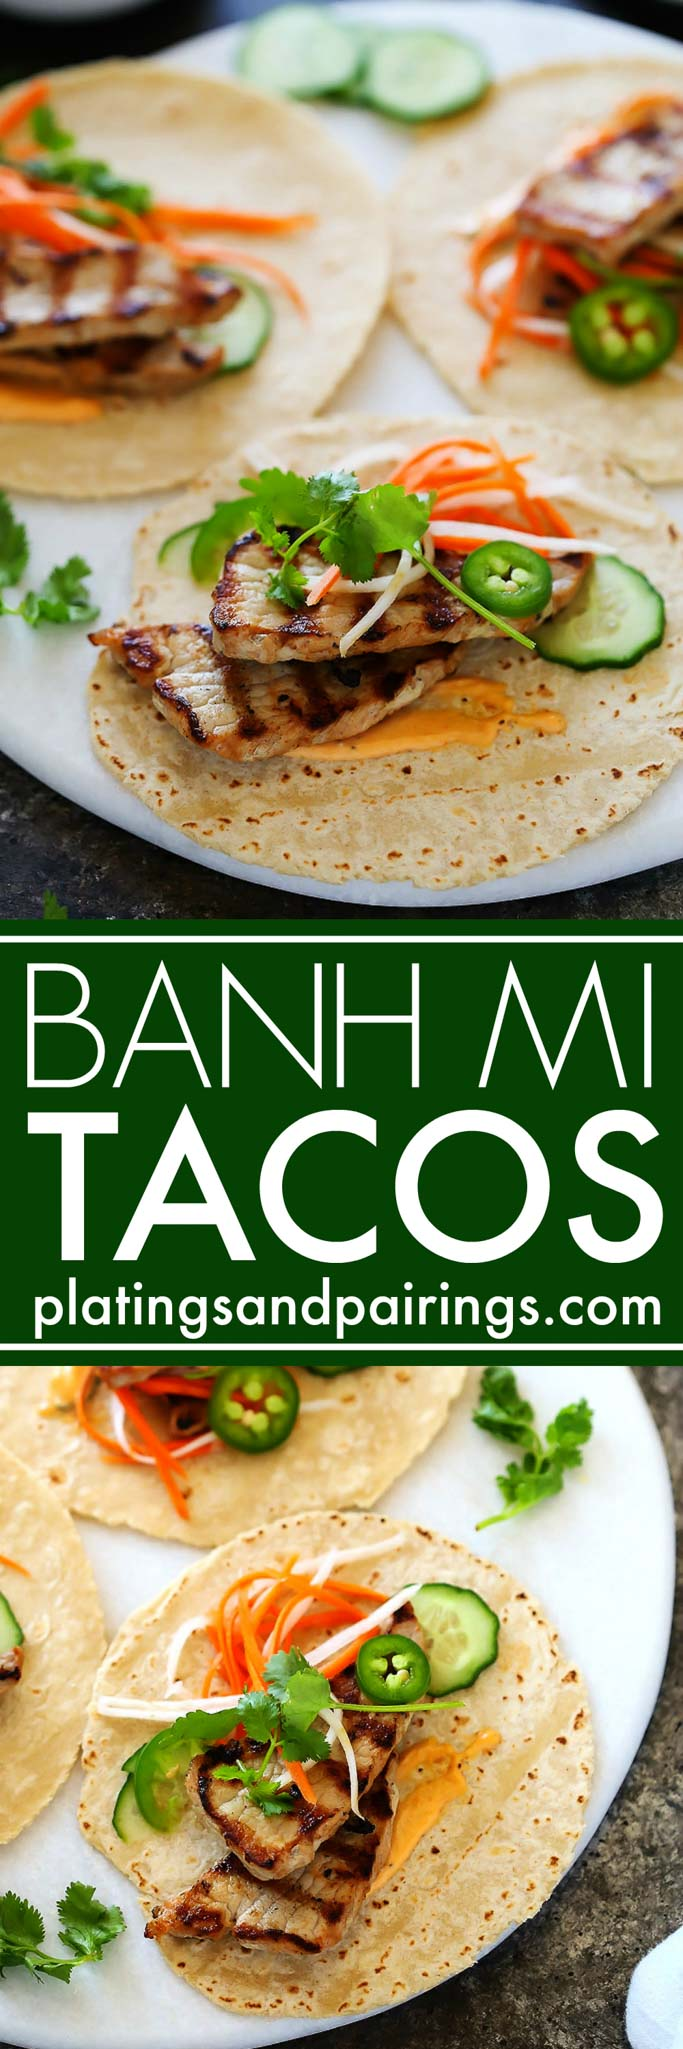 These Banh Mi Pork Tacos are perfect for grilling season and can be made in under 30 minutes! Tender grilled pork is topped with quick-pickled vegetables, hot chili mayo, jalapenos and cilantro. It's your favorite sandwich, in taco form! | platinigsandpairings.com